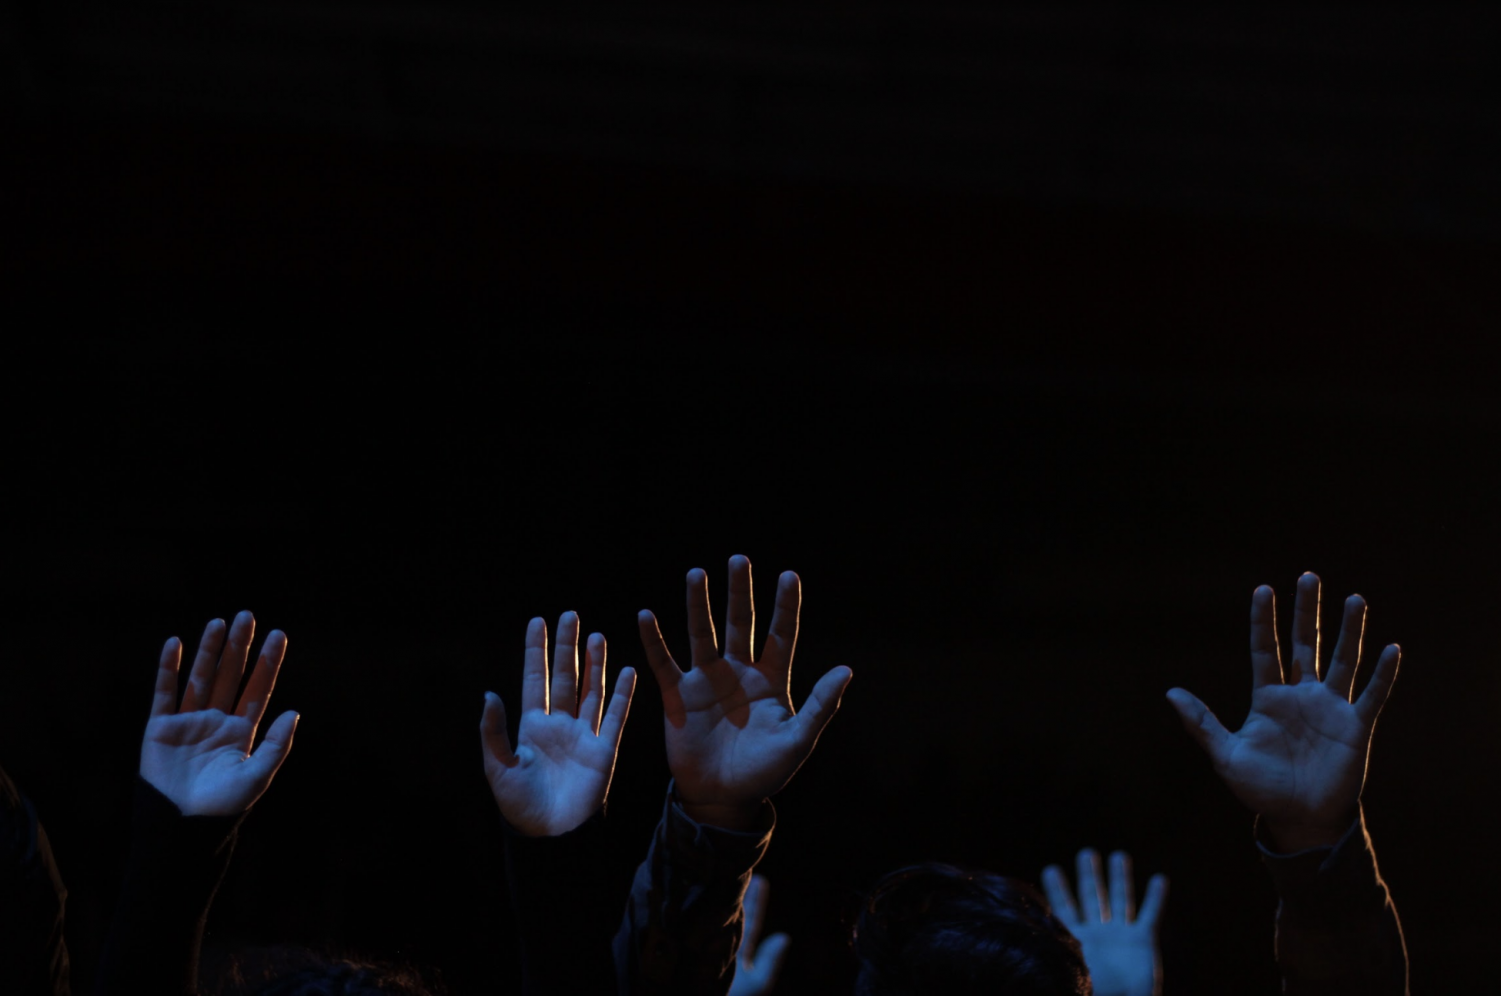 Students+raise+their+hands+in+a+position+of+surrender+during+extended+worship.